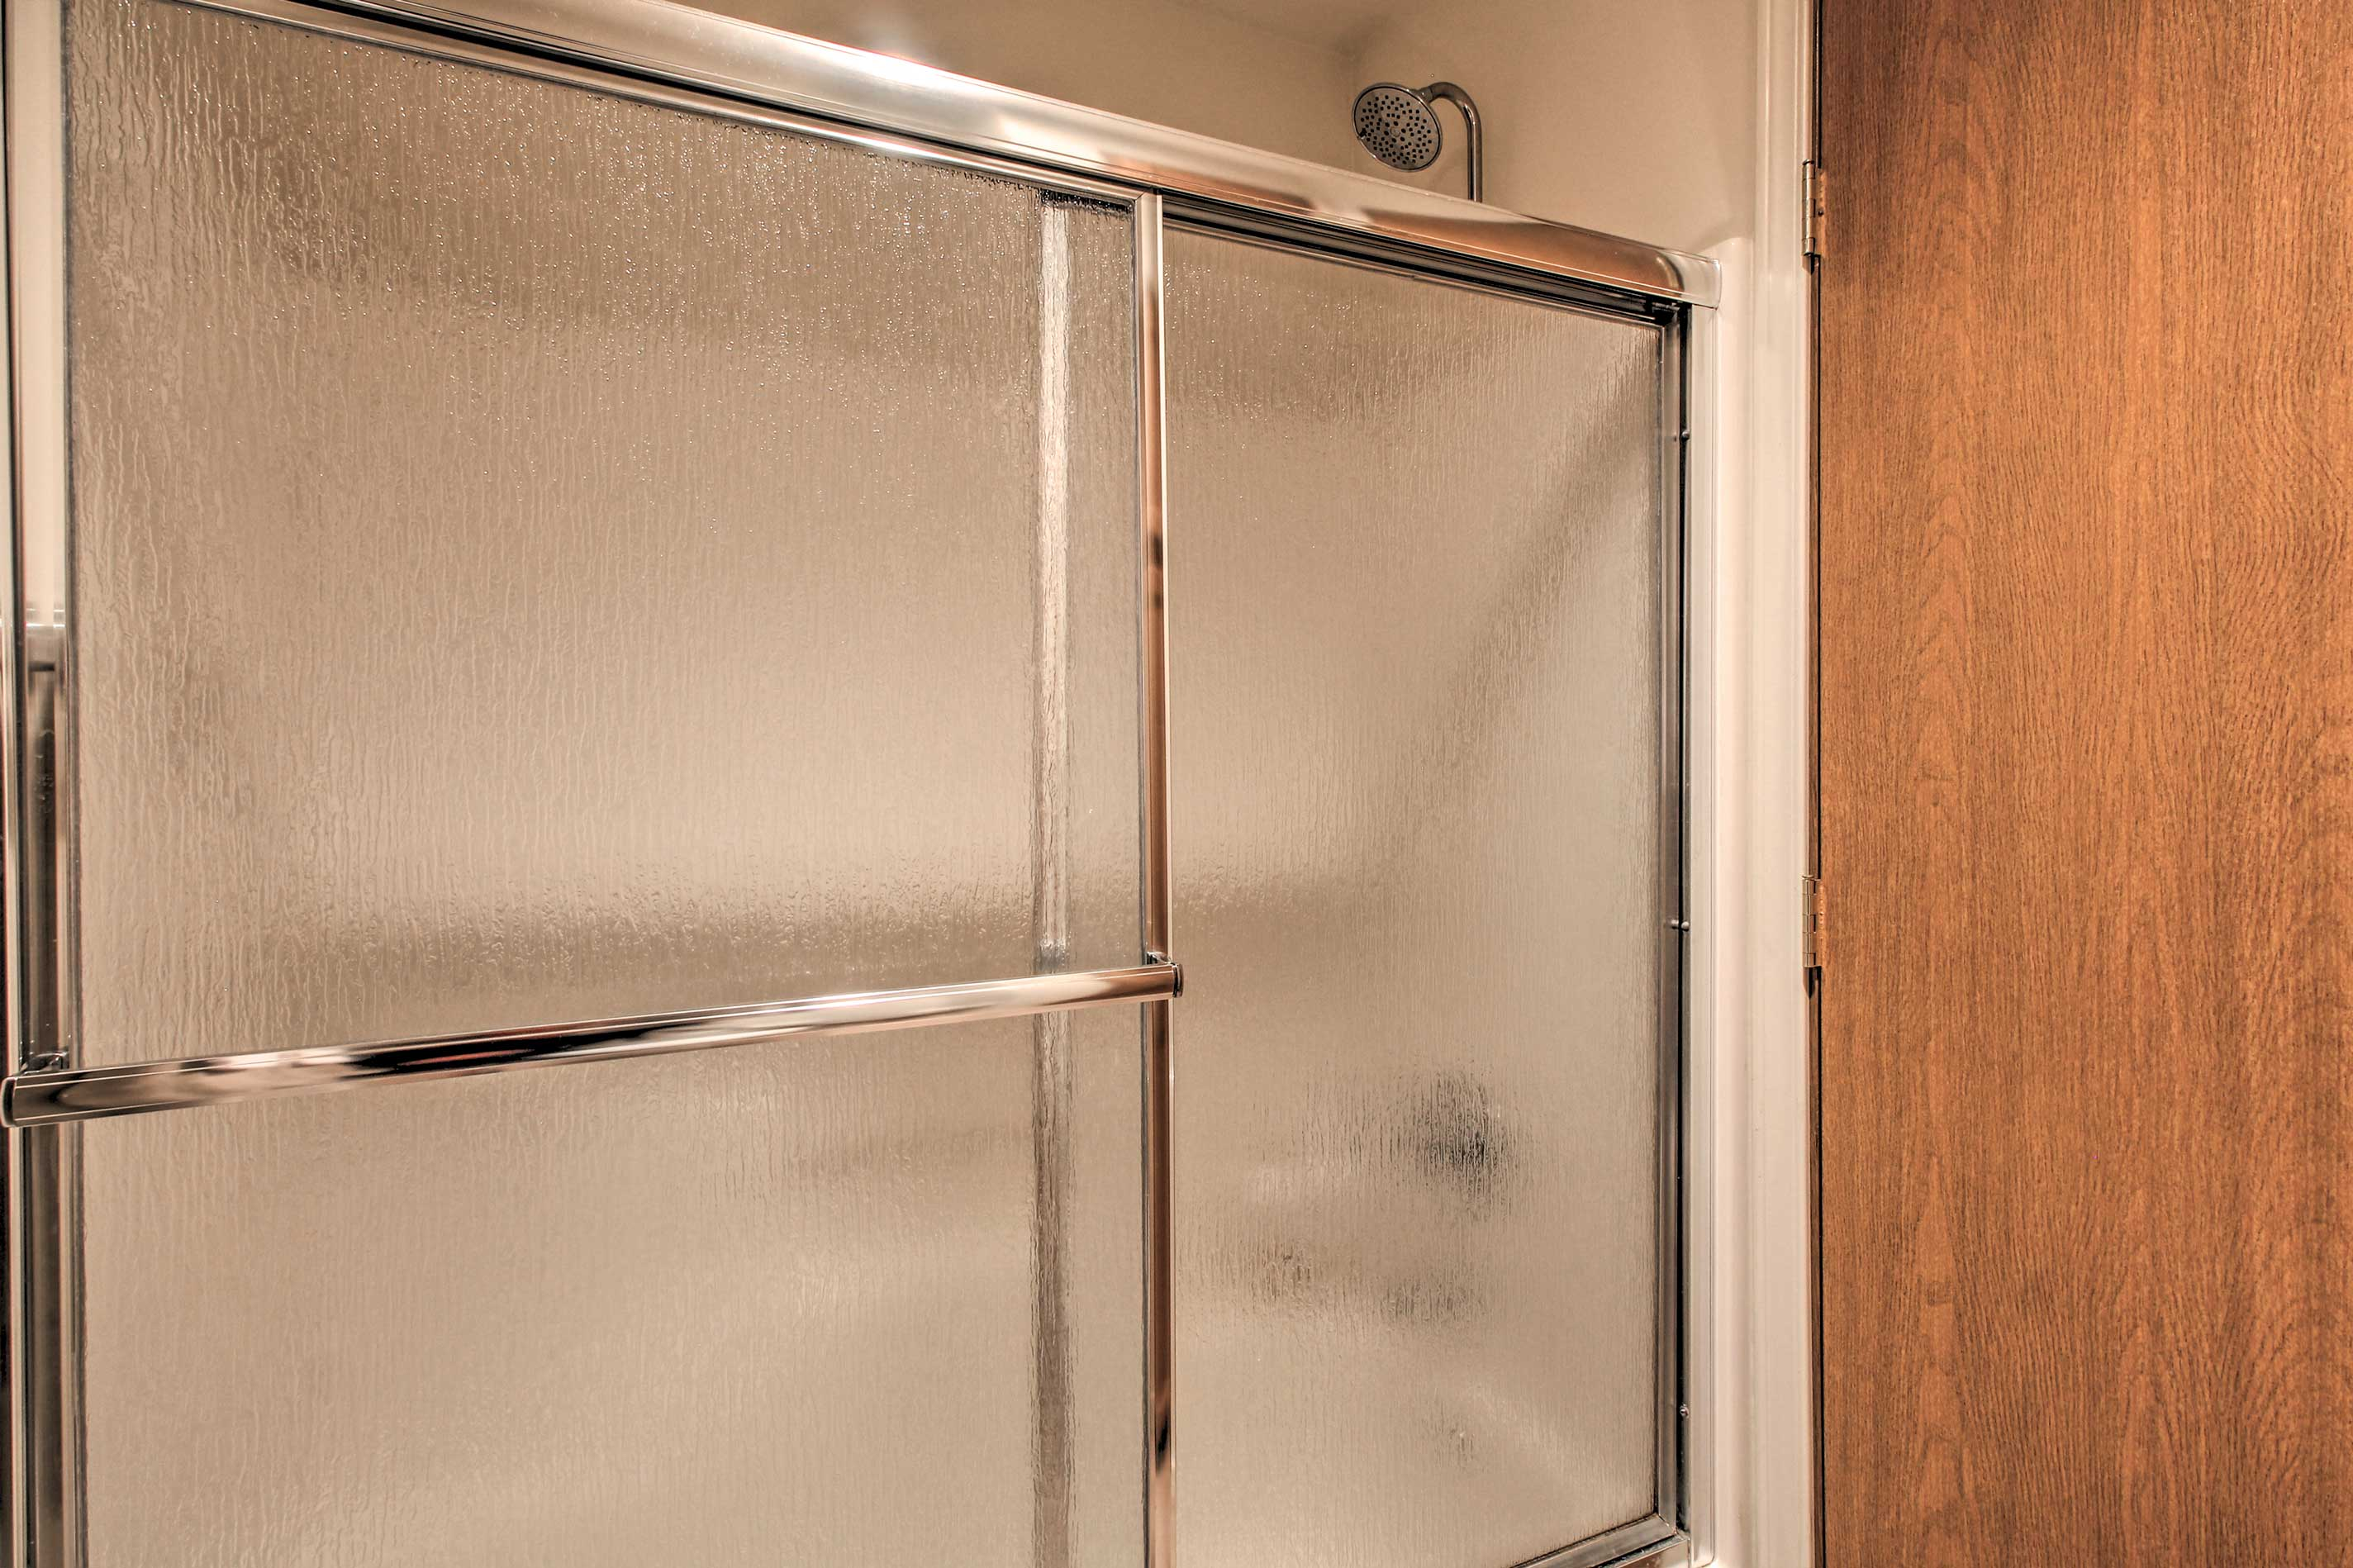 It also includes a shower/tub combo.